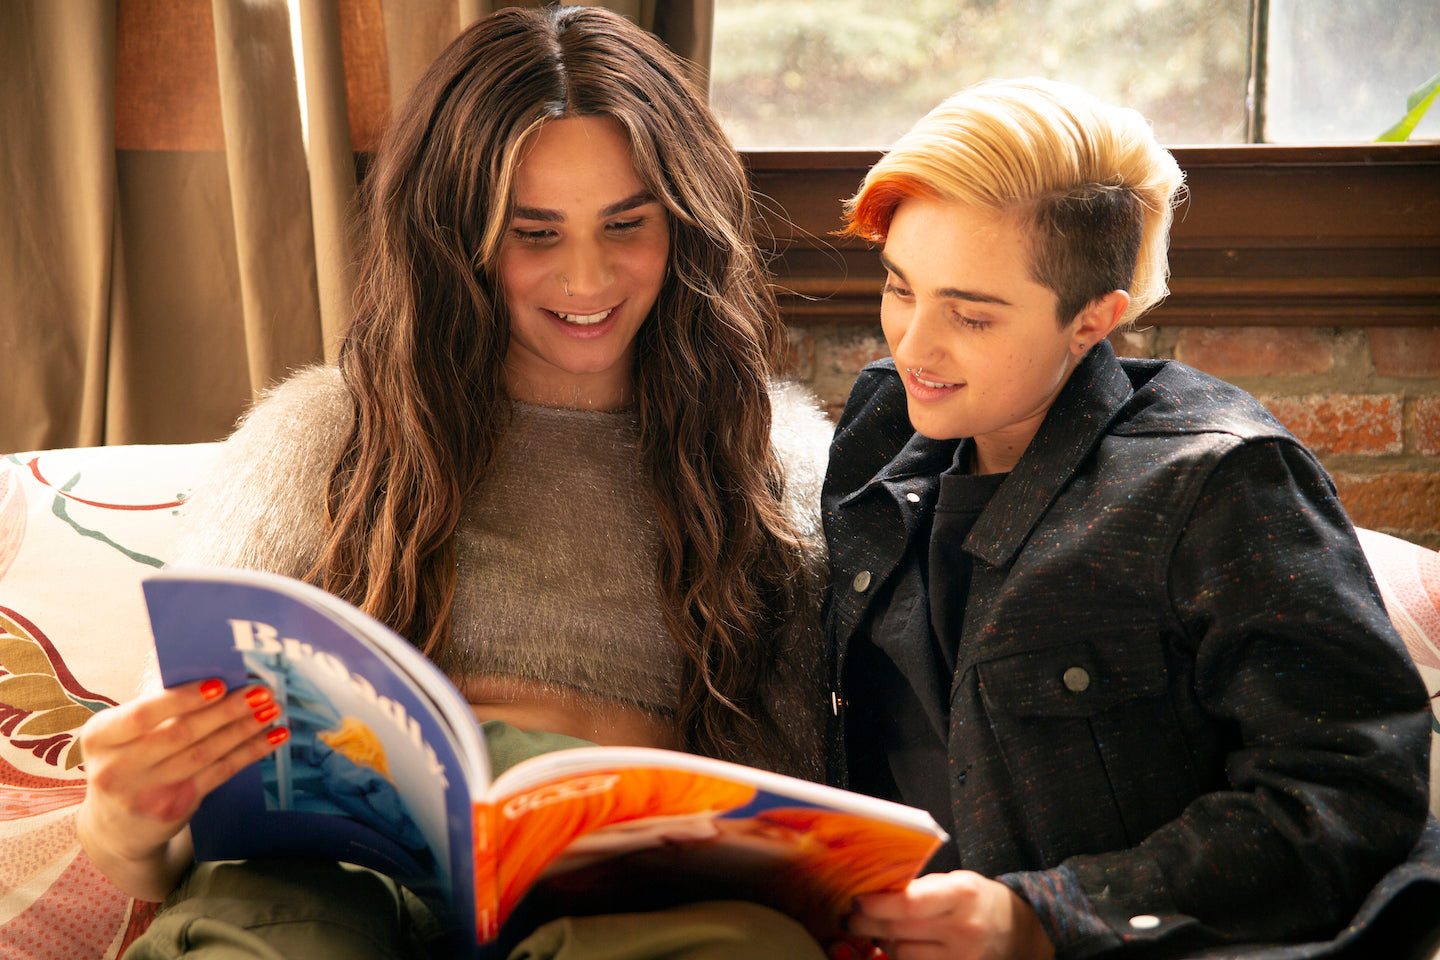 A transfeminine non-binary person and transmasculine gender-nonconforming person reading a magazine together.